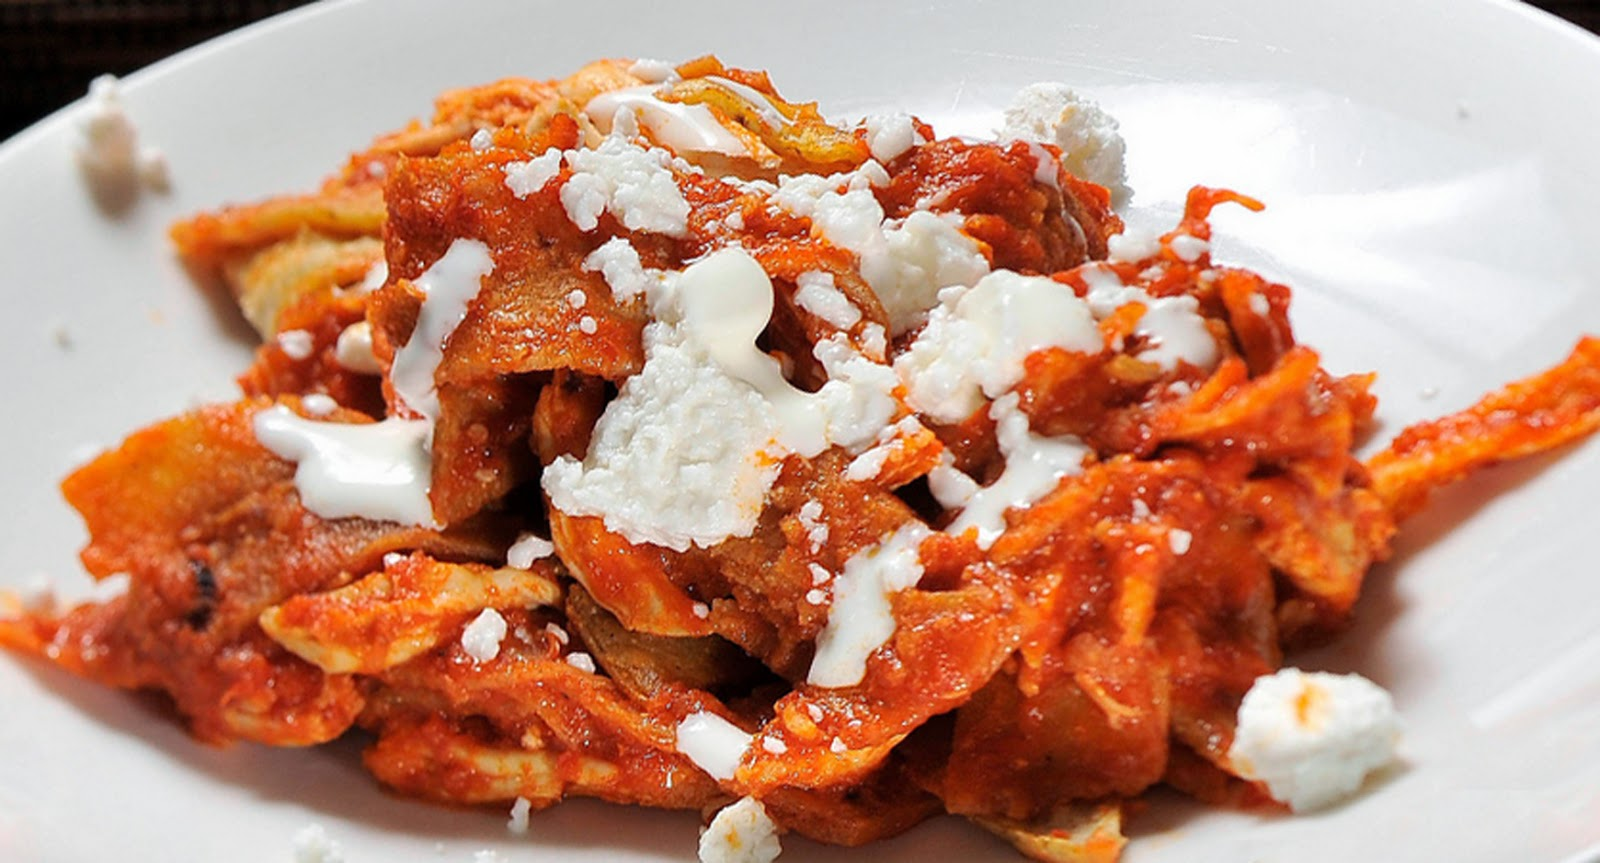 chilaquiles mexican cuisine Chilaquiles $1550 deep-fried tortilla chips, homemade sauce, topped with sour cream, onions, and crumbled cheese, served with black beans.